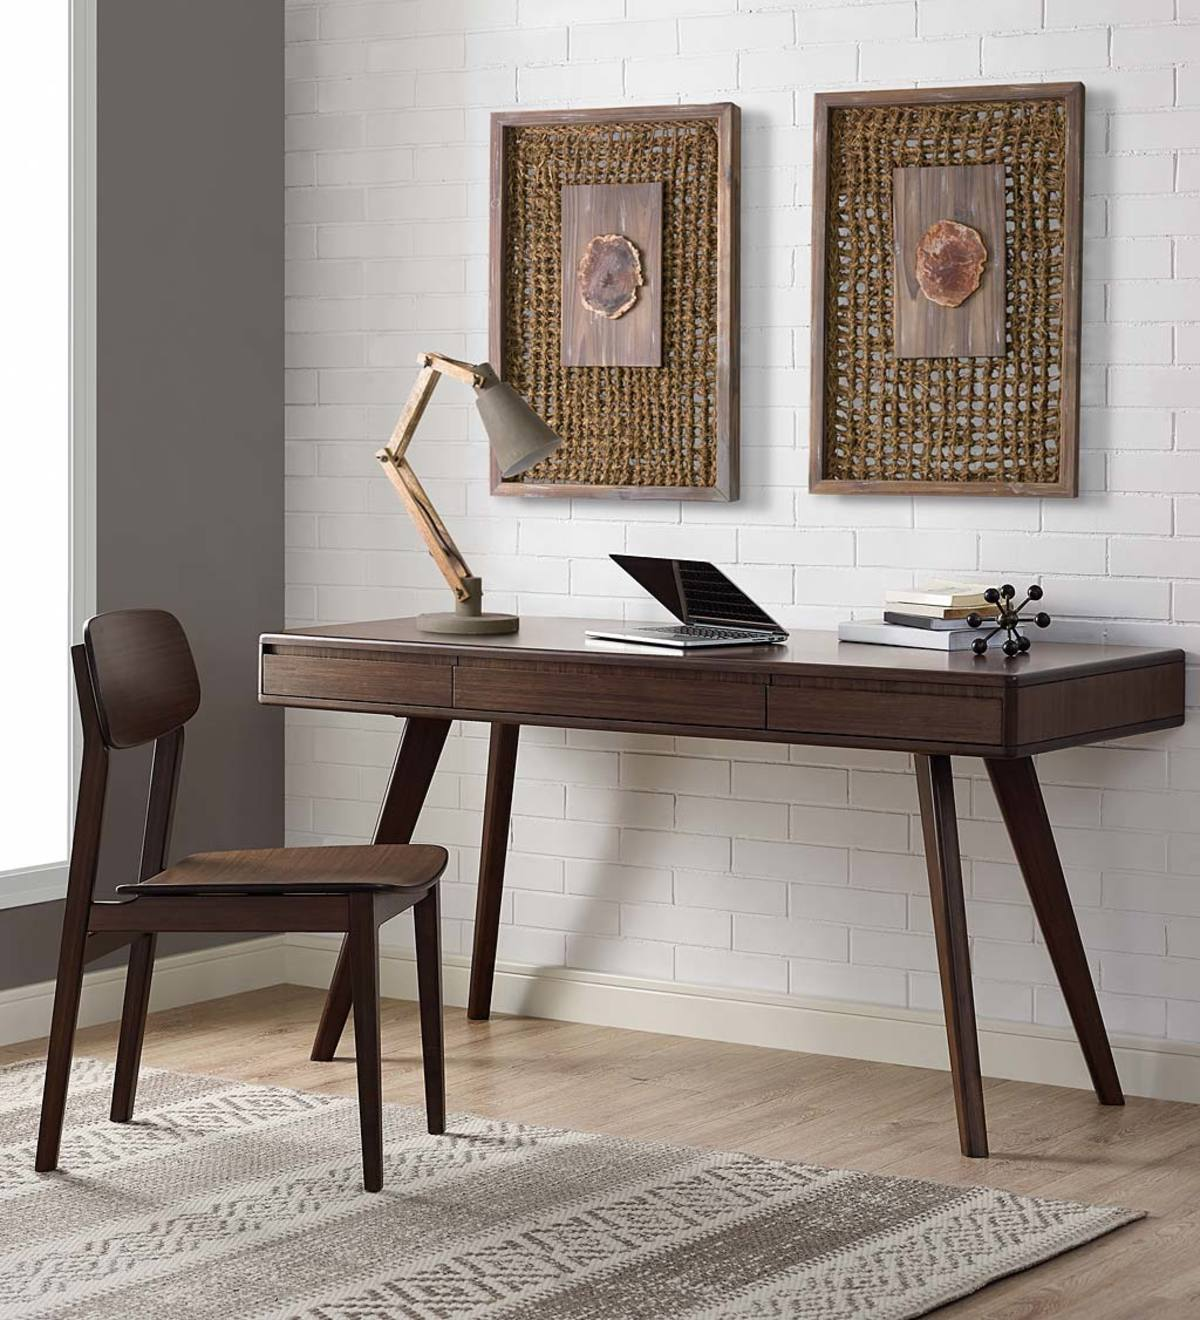 Currant Bamboo Writing Desk and Chairs